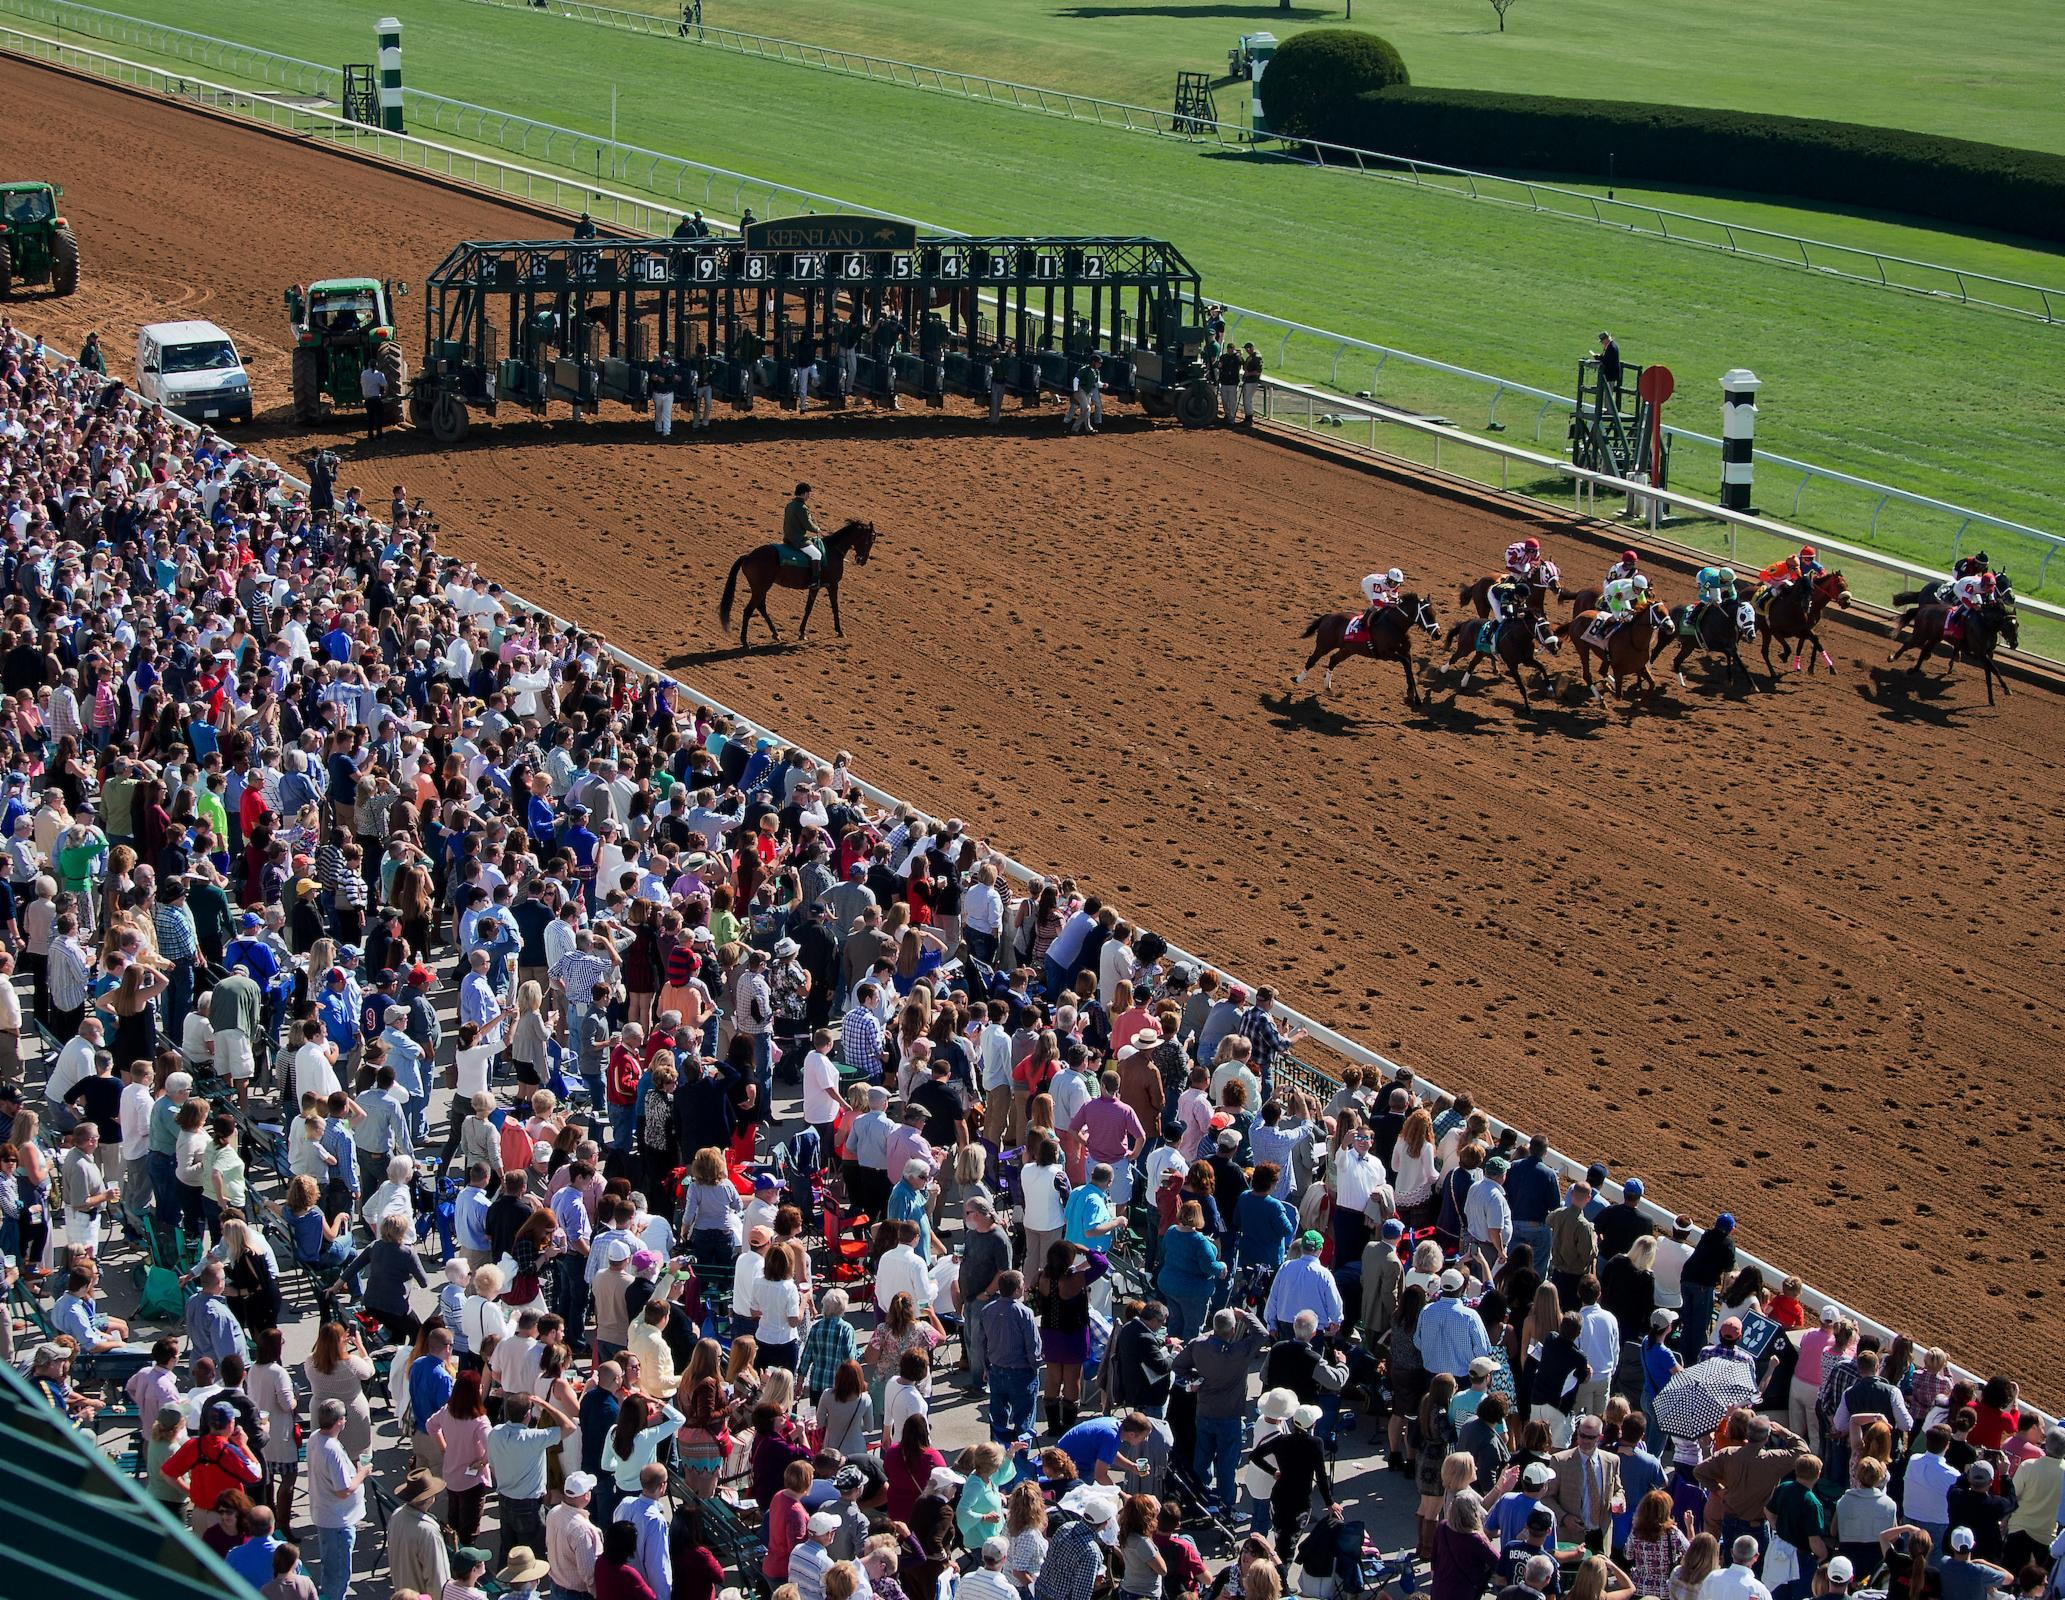 Keeneland on the rail